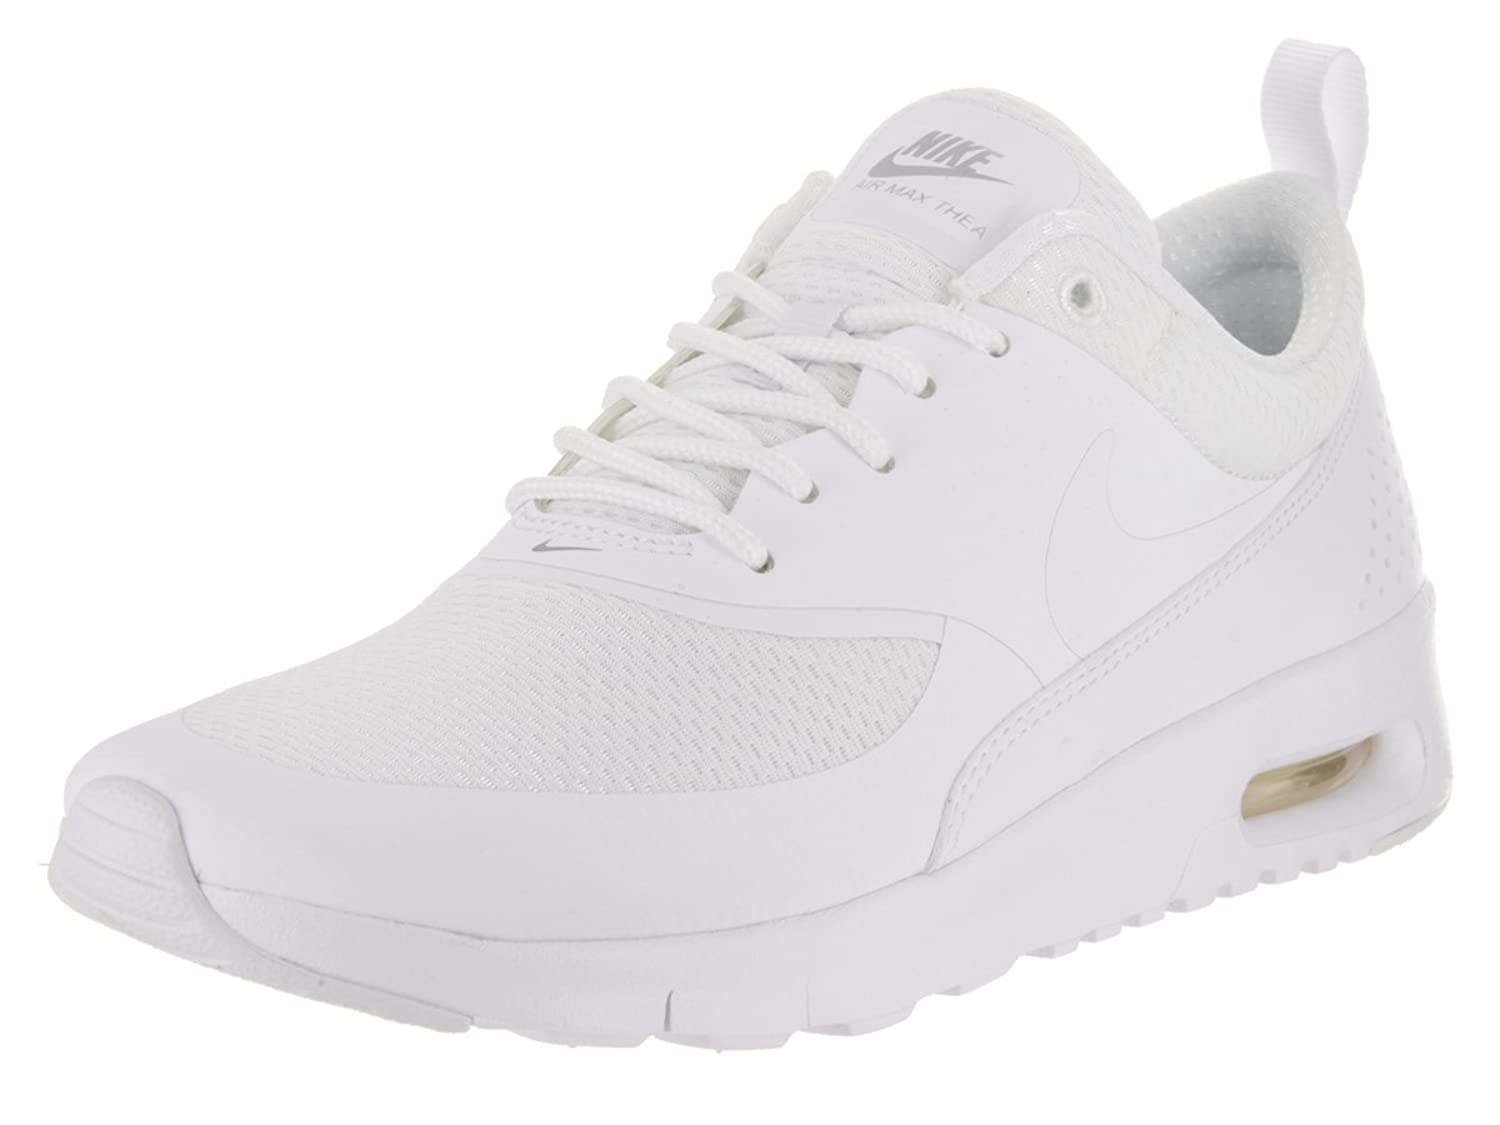 new concept 94f95 7cb57 30%OFF Nike Kids Air Max Thea (GS) Running Shoe.